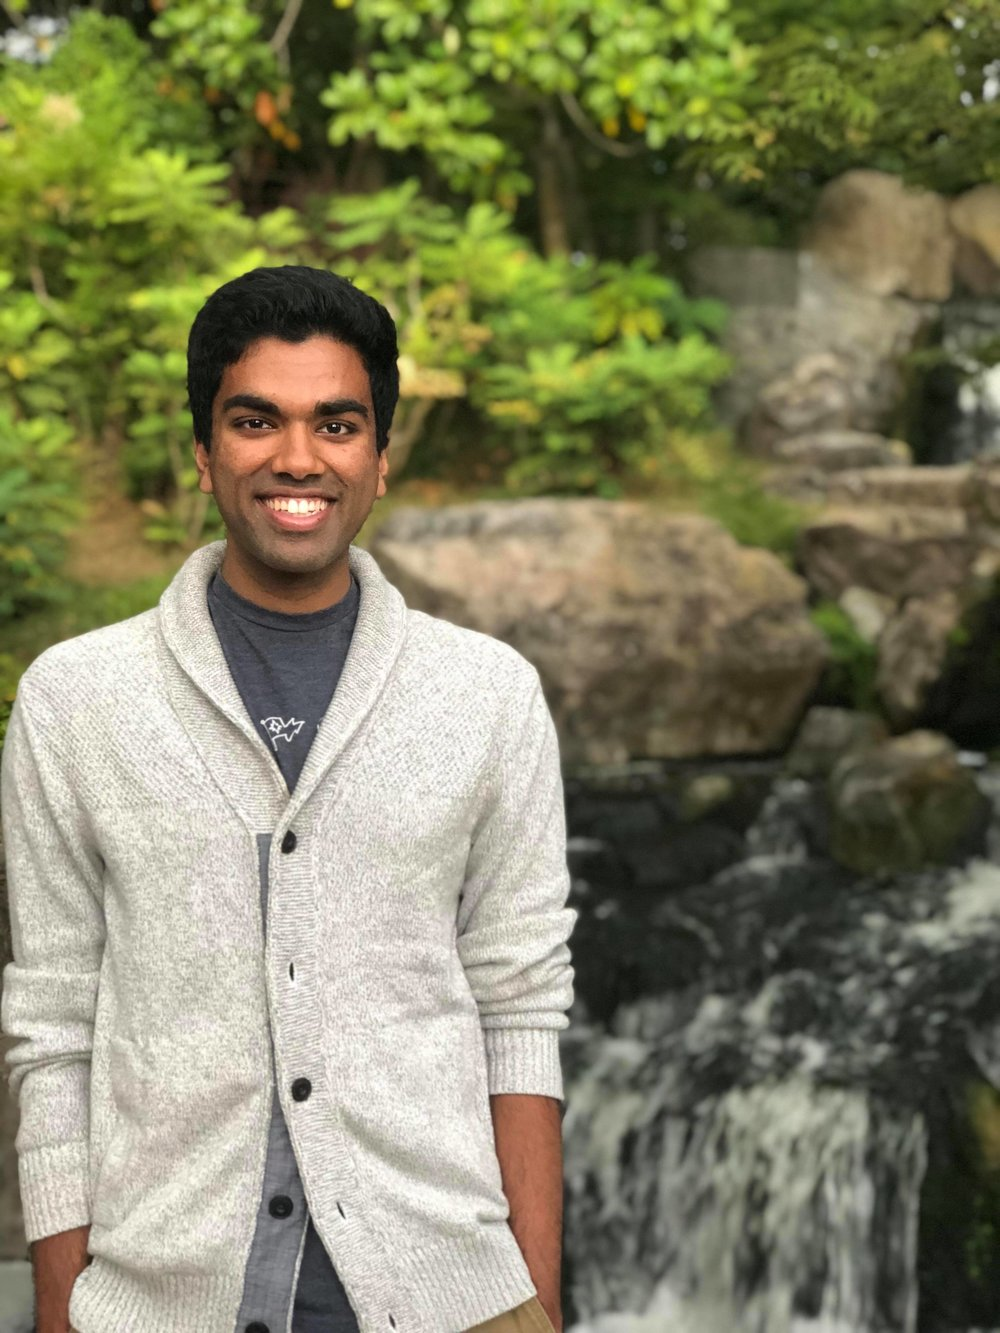 Akshath Sivaprasad   Engineering Ninja, Privacy & Cybersecurity and Architect  Areas of Expertise: Cybersecurity, Data Viz, Blockchain, Color Codes, Using OCR to Win Word Streak With Friends  Eats an entire pizza every night.